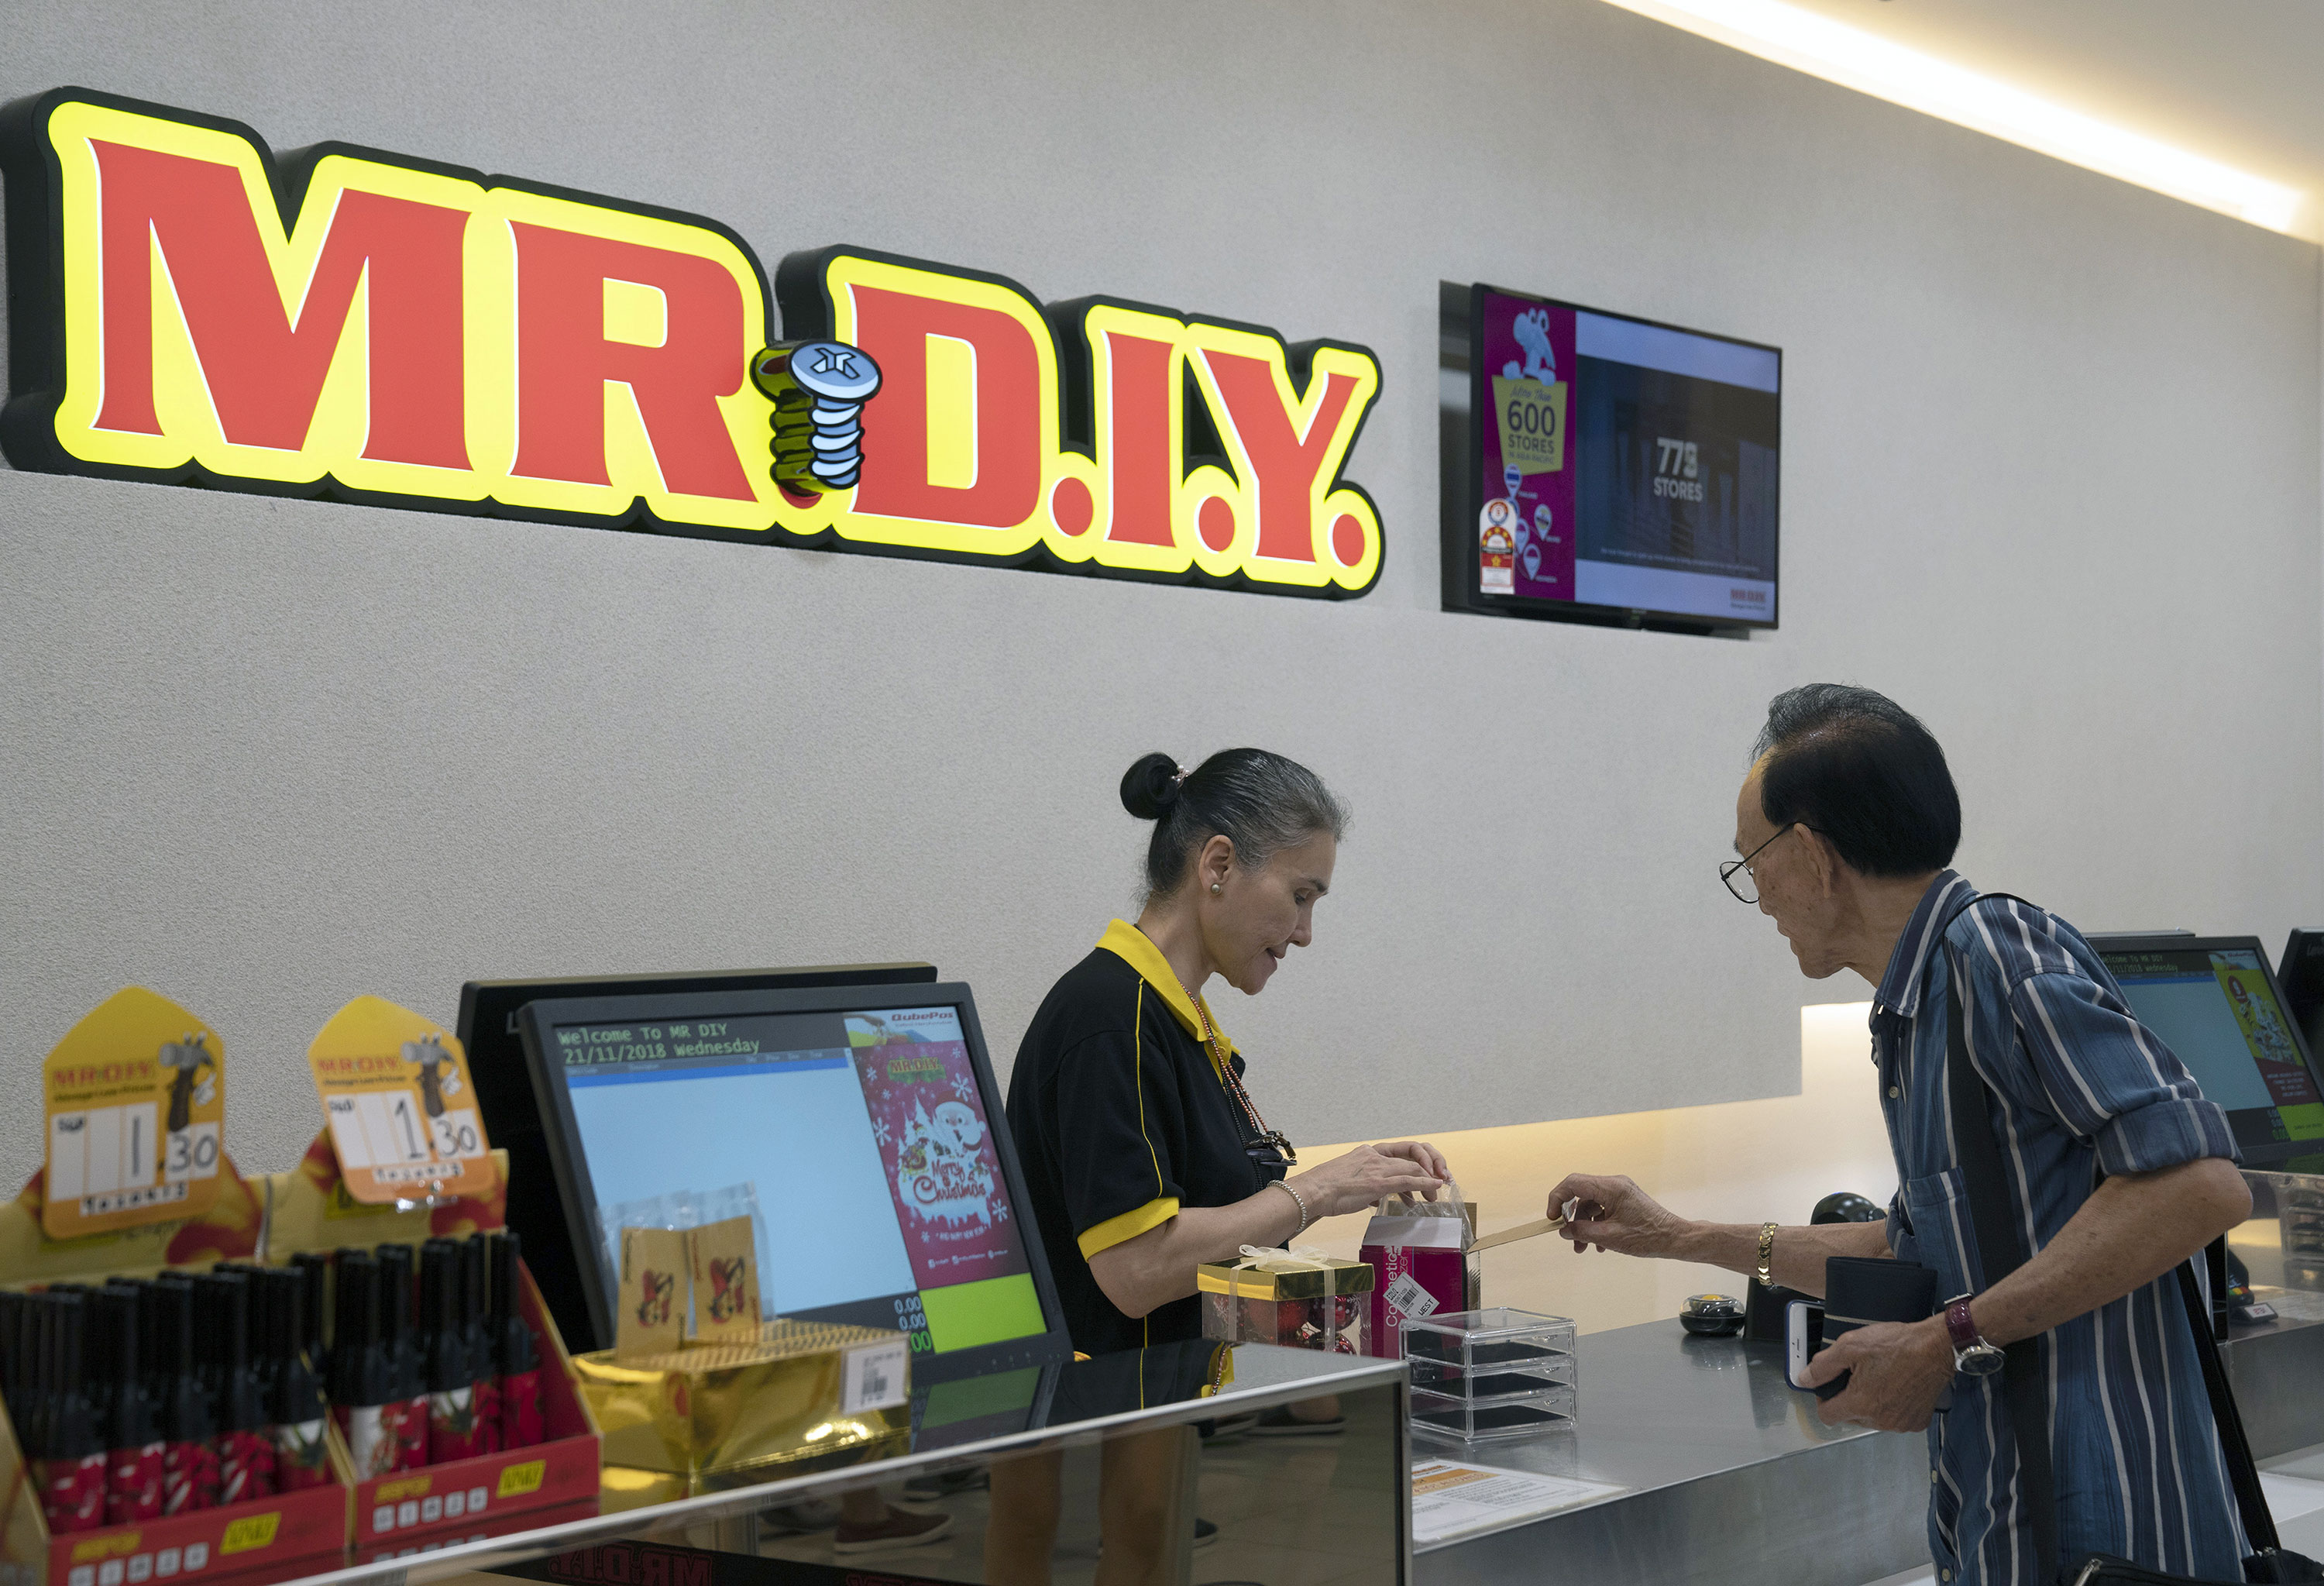 An employee assists a customer at Mr. DIY Sdn. hardware store in Singapore,